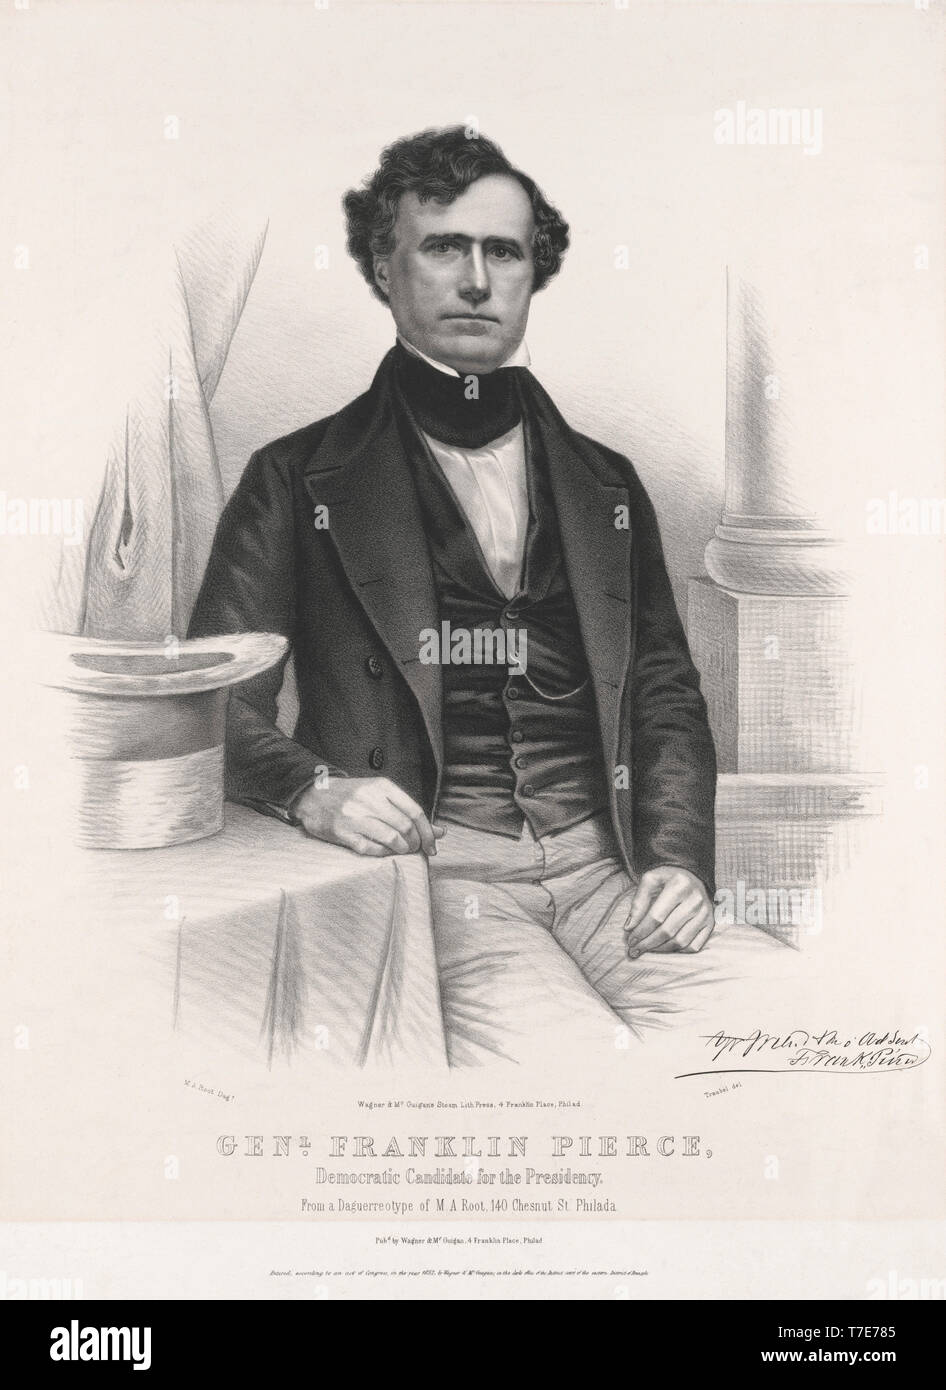 General Franklin Pierce, Democratic Candidate for the Presidency, Lithograph by Wagner & McGuigan from a Daguerreotype by MA. Root, 1852 - Stock Image